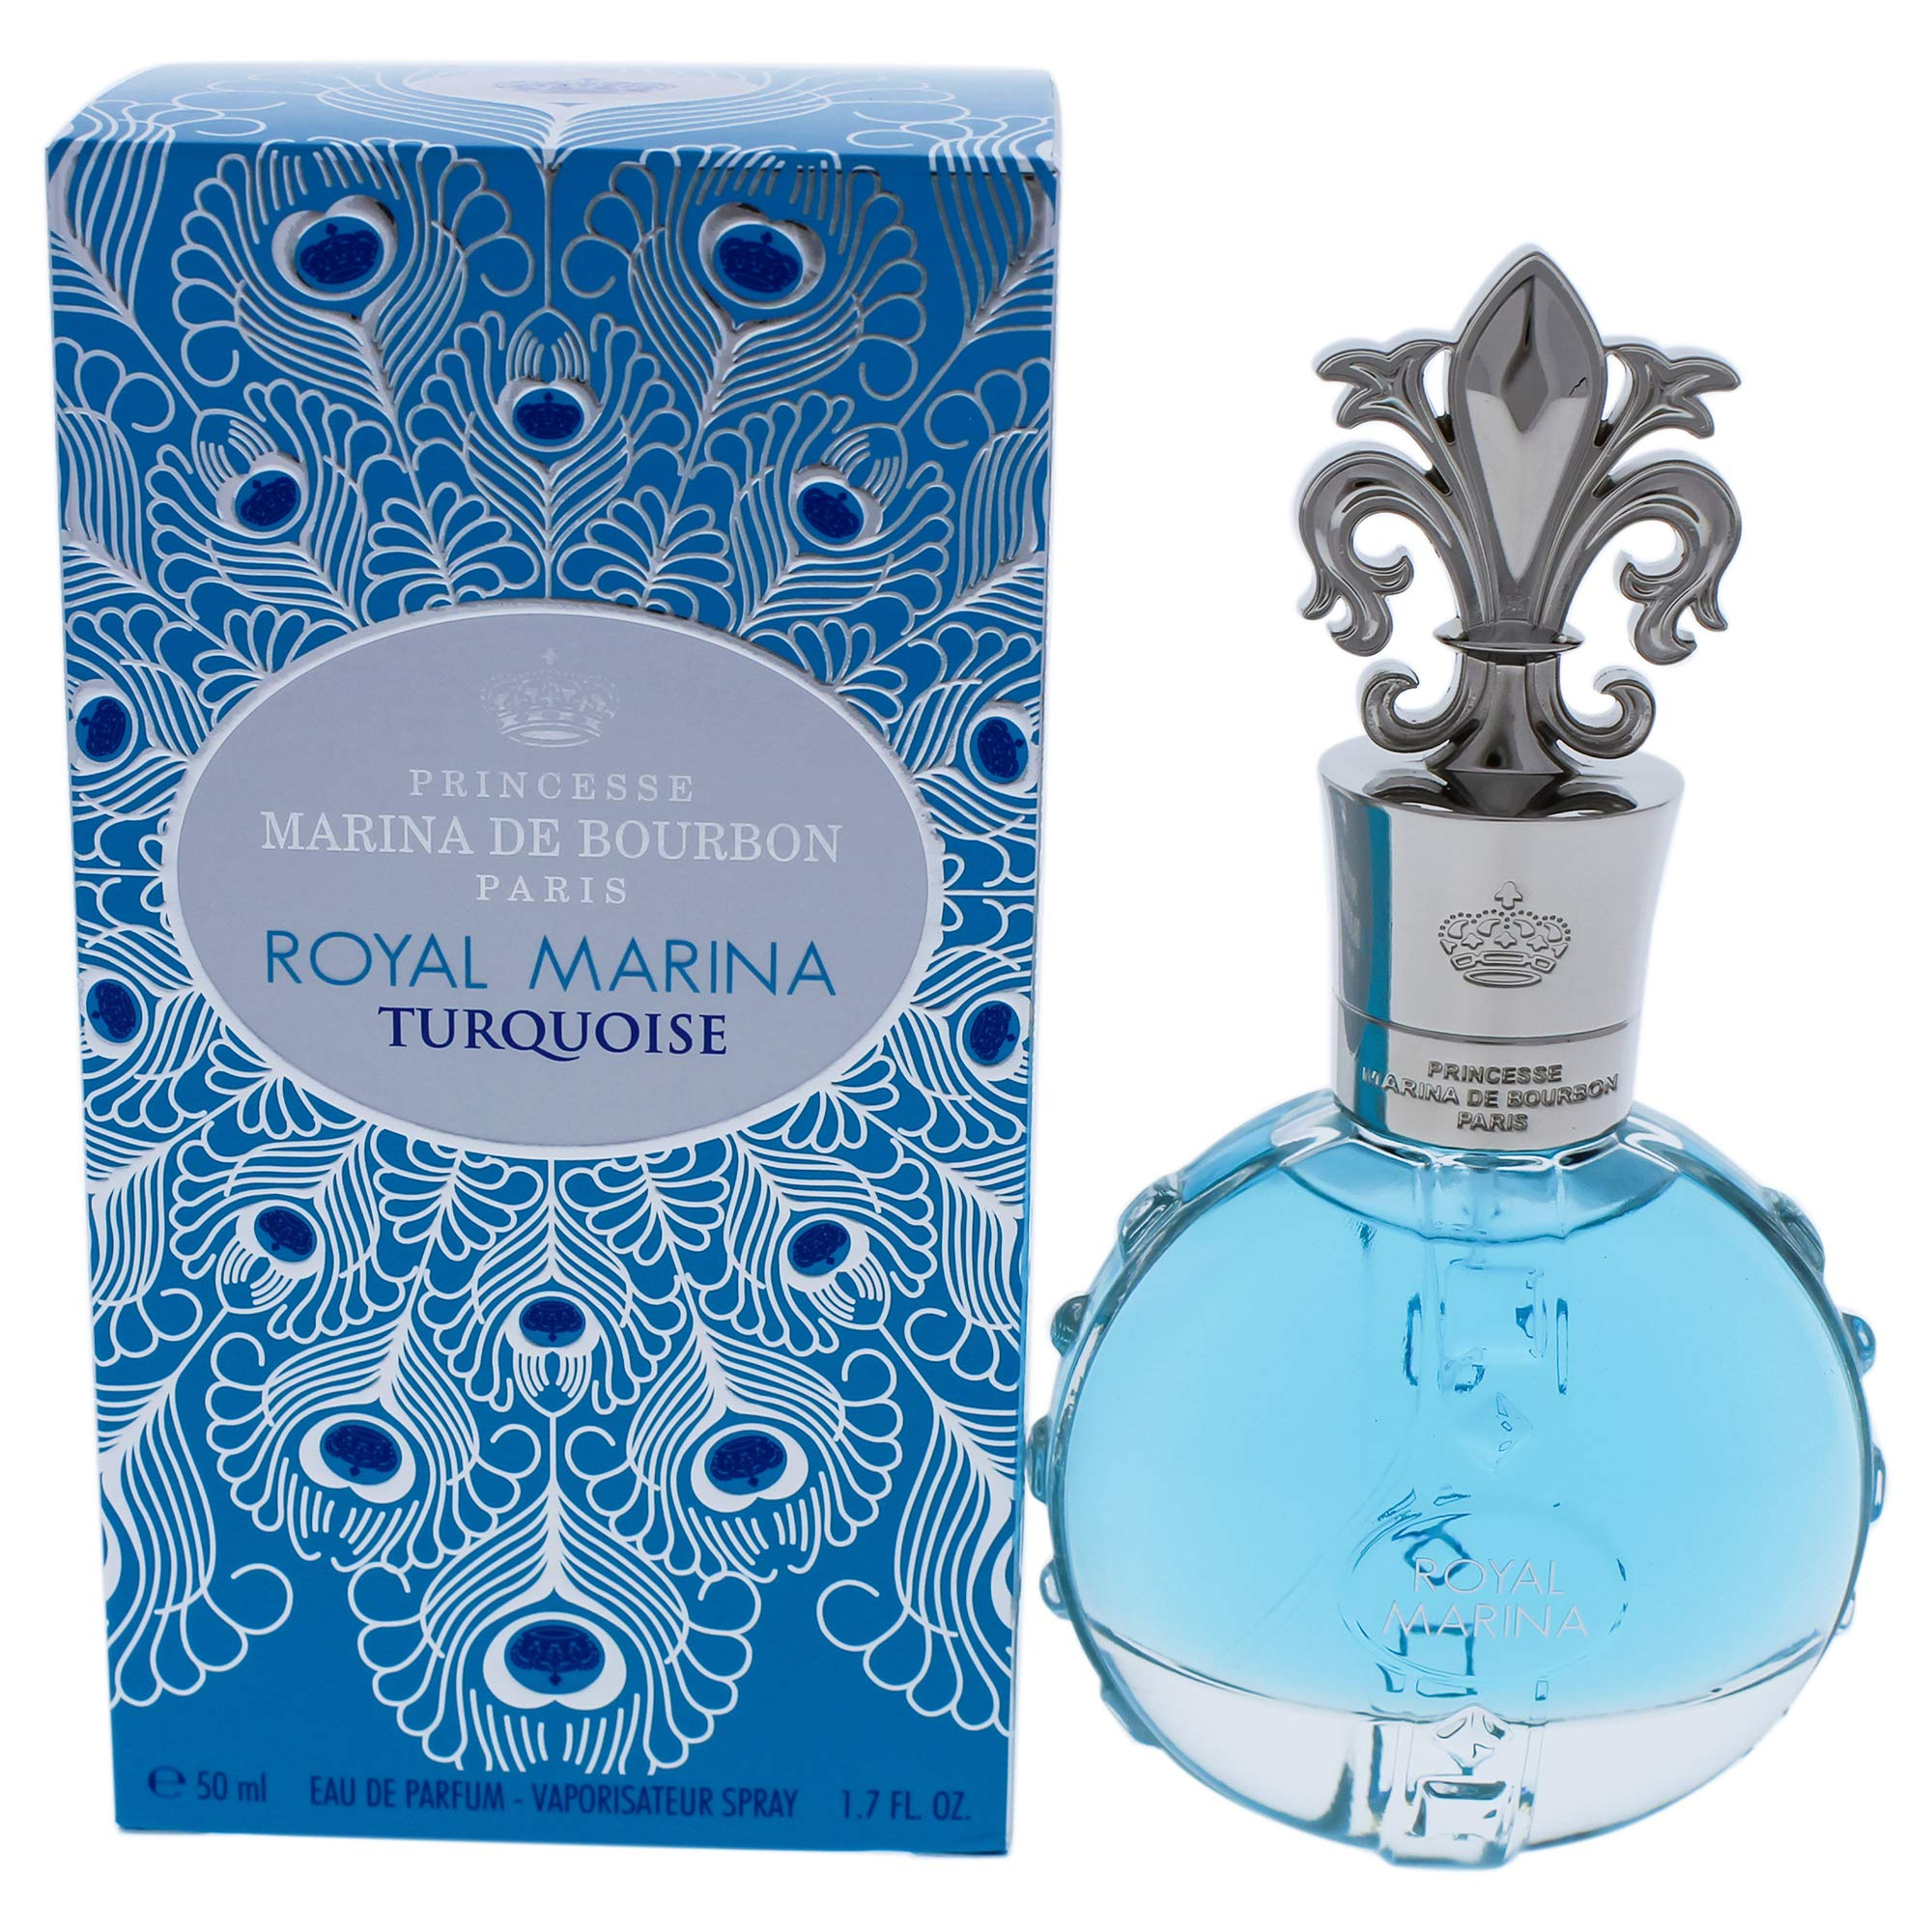 Royal Marina Turquoise by Princesse Marina de Bourbon | Eau de Parfum Spray | Fragrance for Women | Fresh Floral Scent with Notes of Green Apple and Lily of the Valley | 50 mL / 1.7 fl oz by Marina de Bourbon